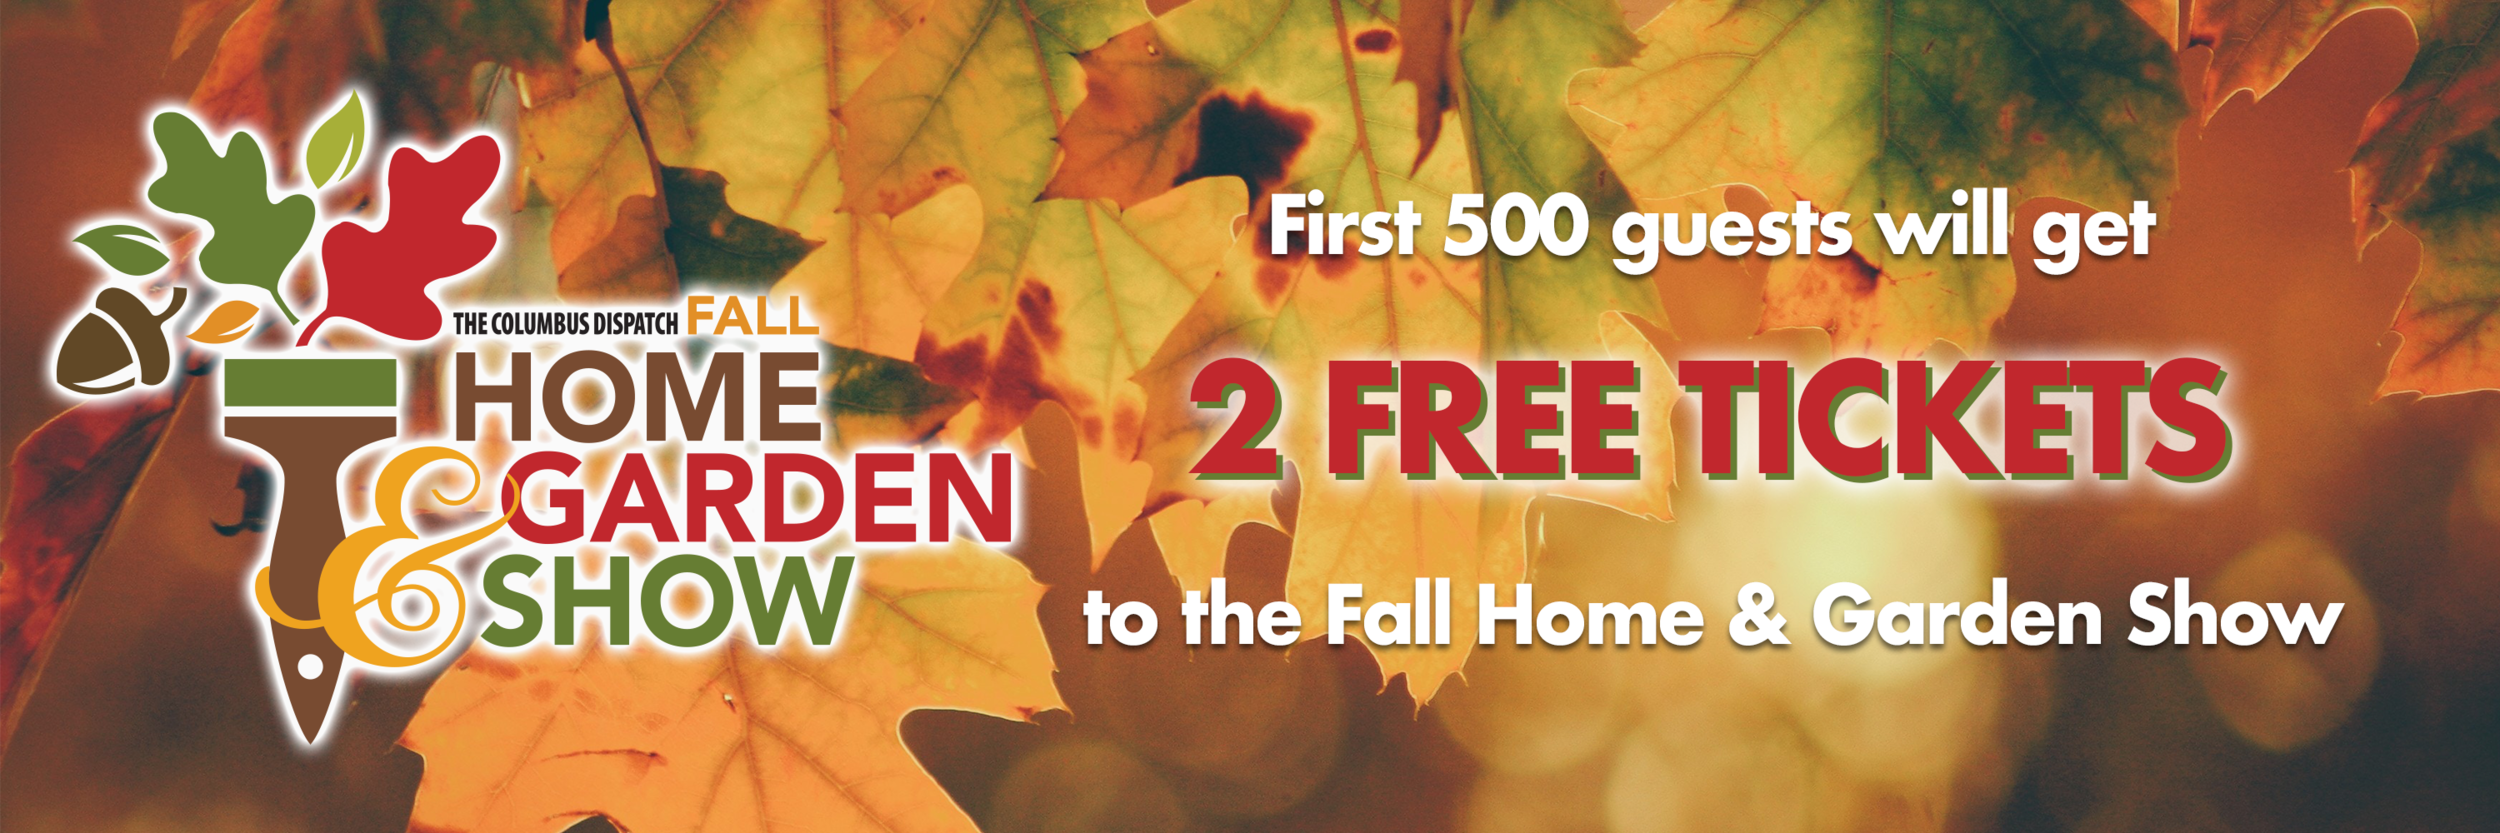 Fall home and garden show